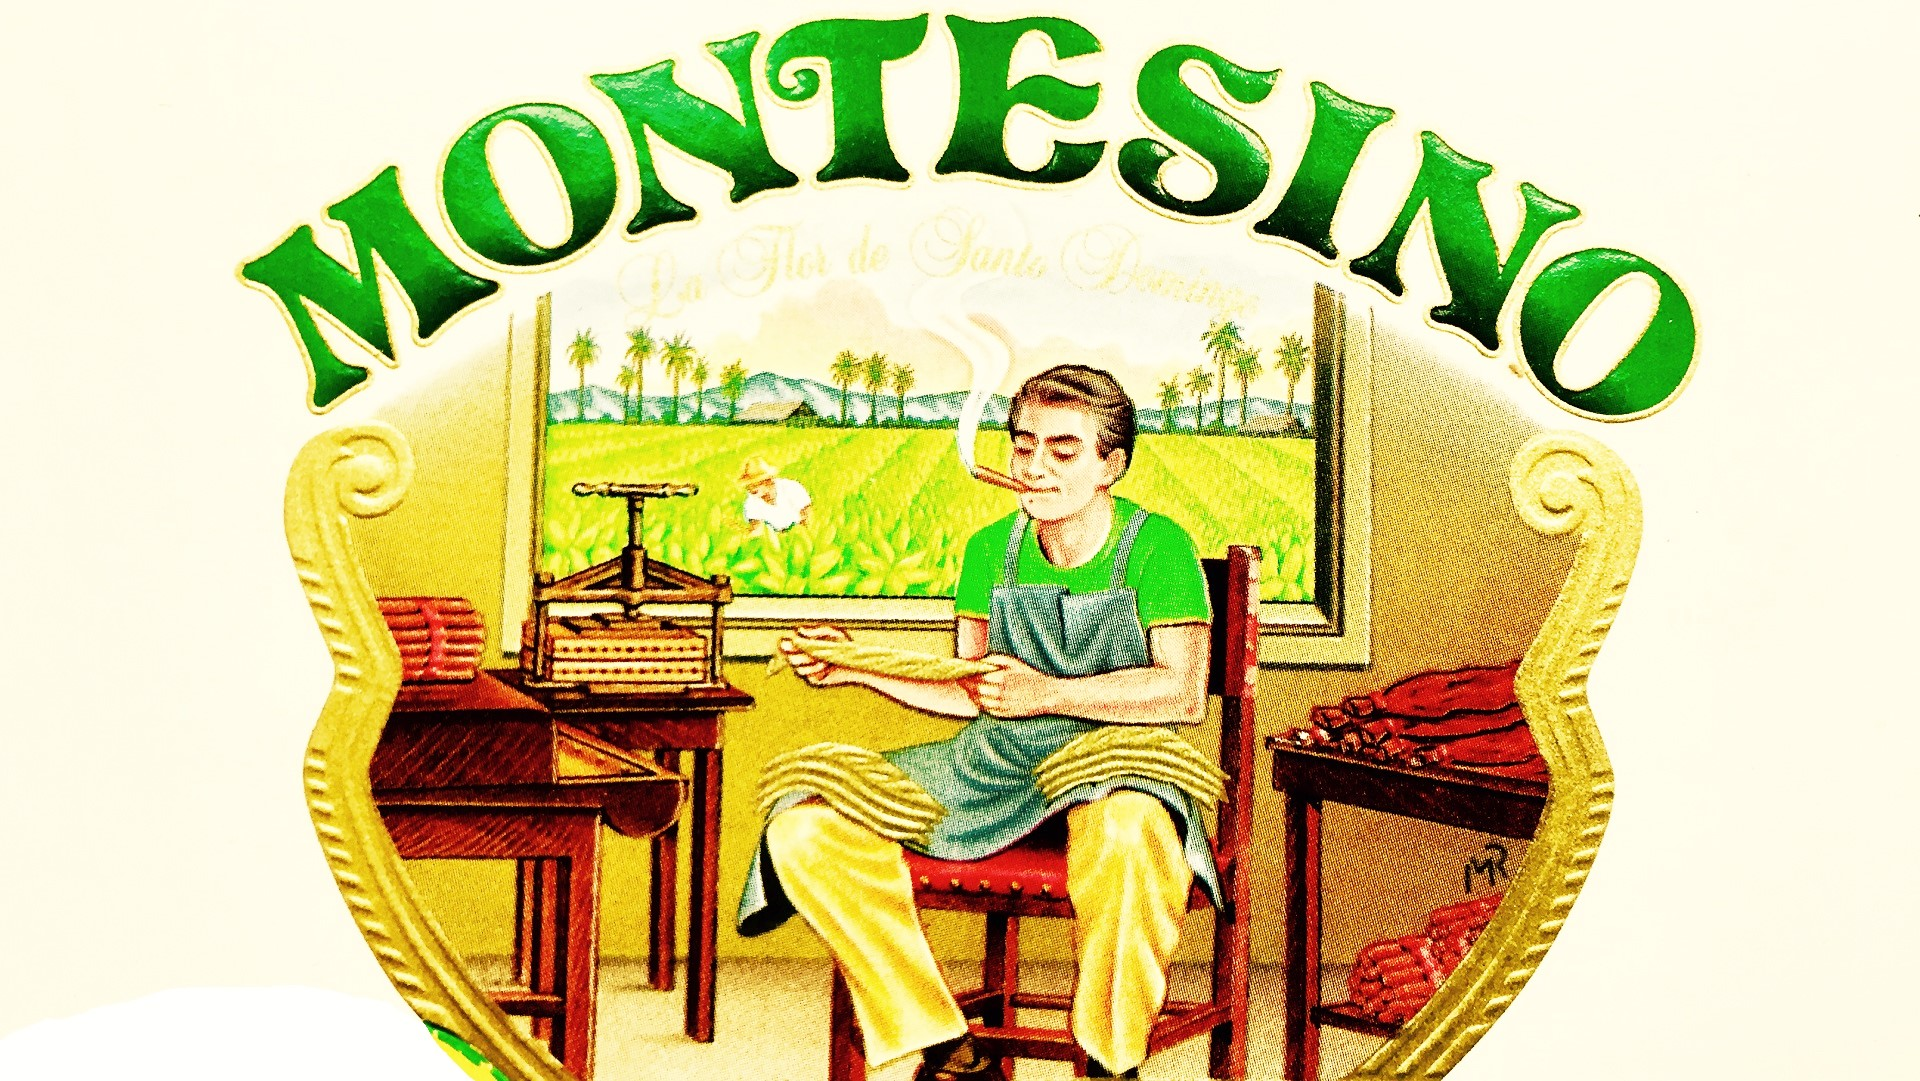 montesino cigars graphic image